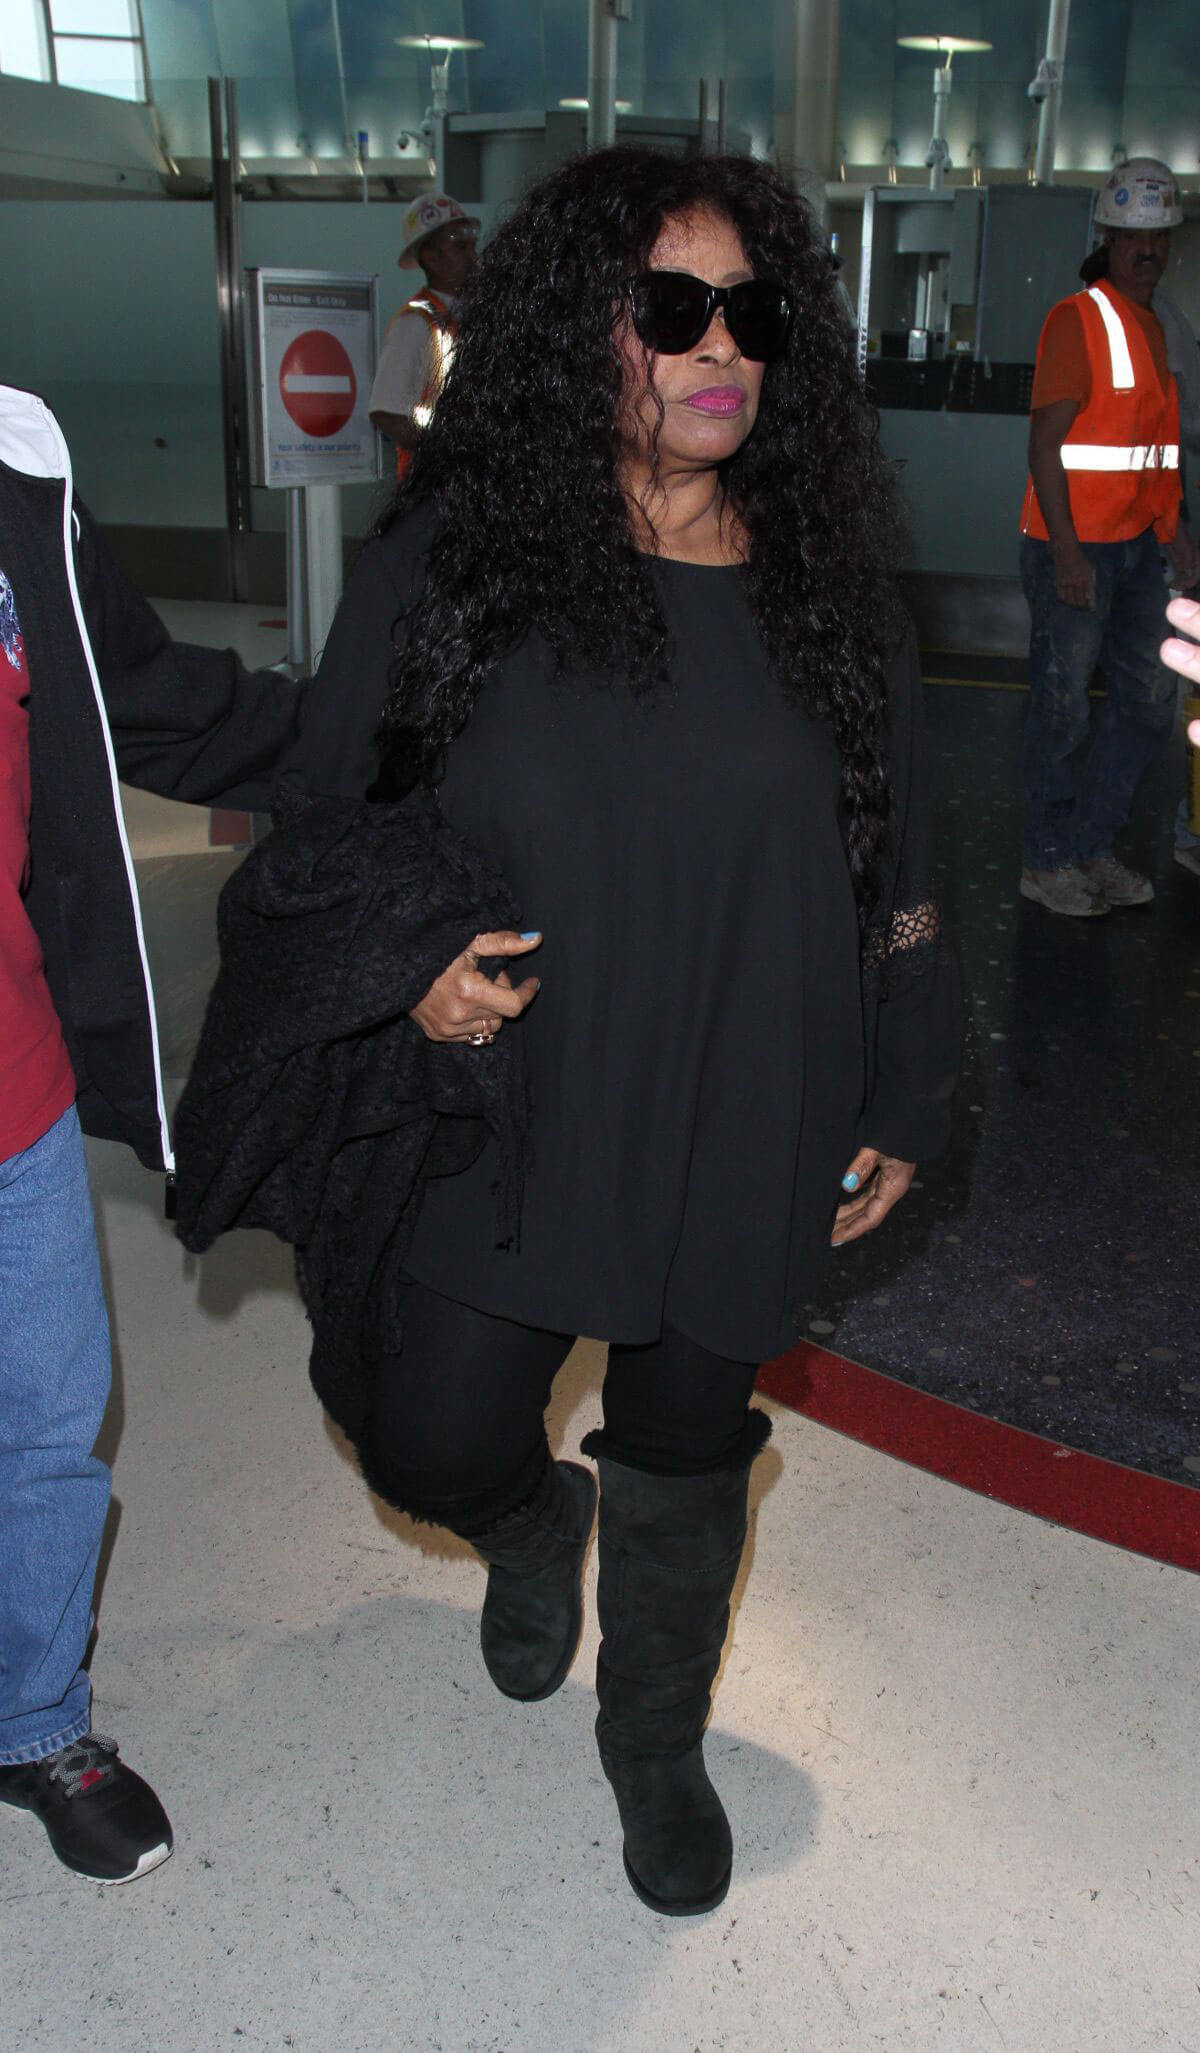 Chaka Khan Stills at LAX Airport in Los Angeles